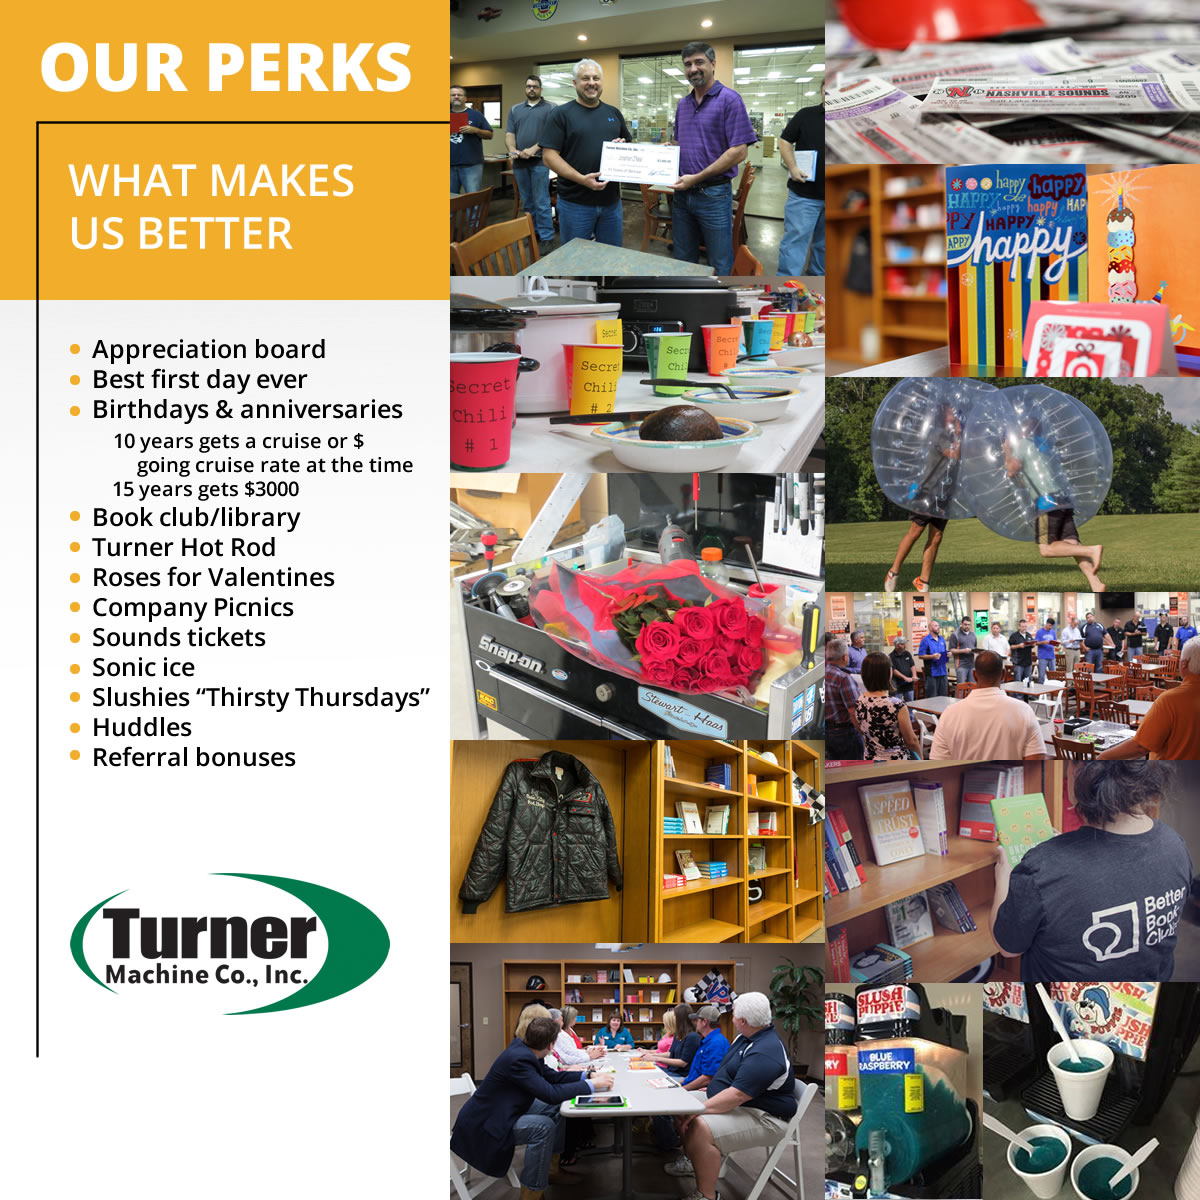 Our Perks, What Makes Turner Machine Better